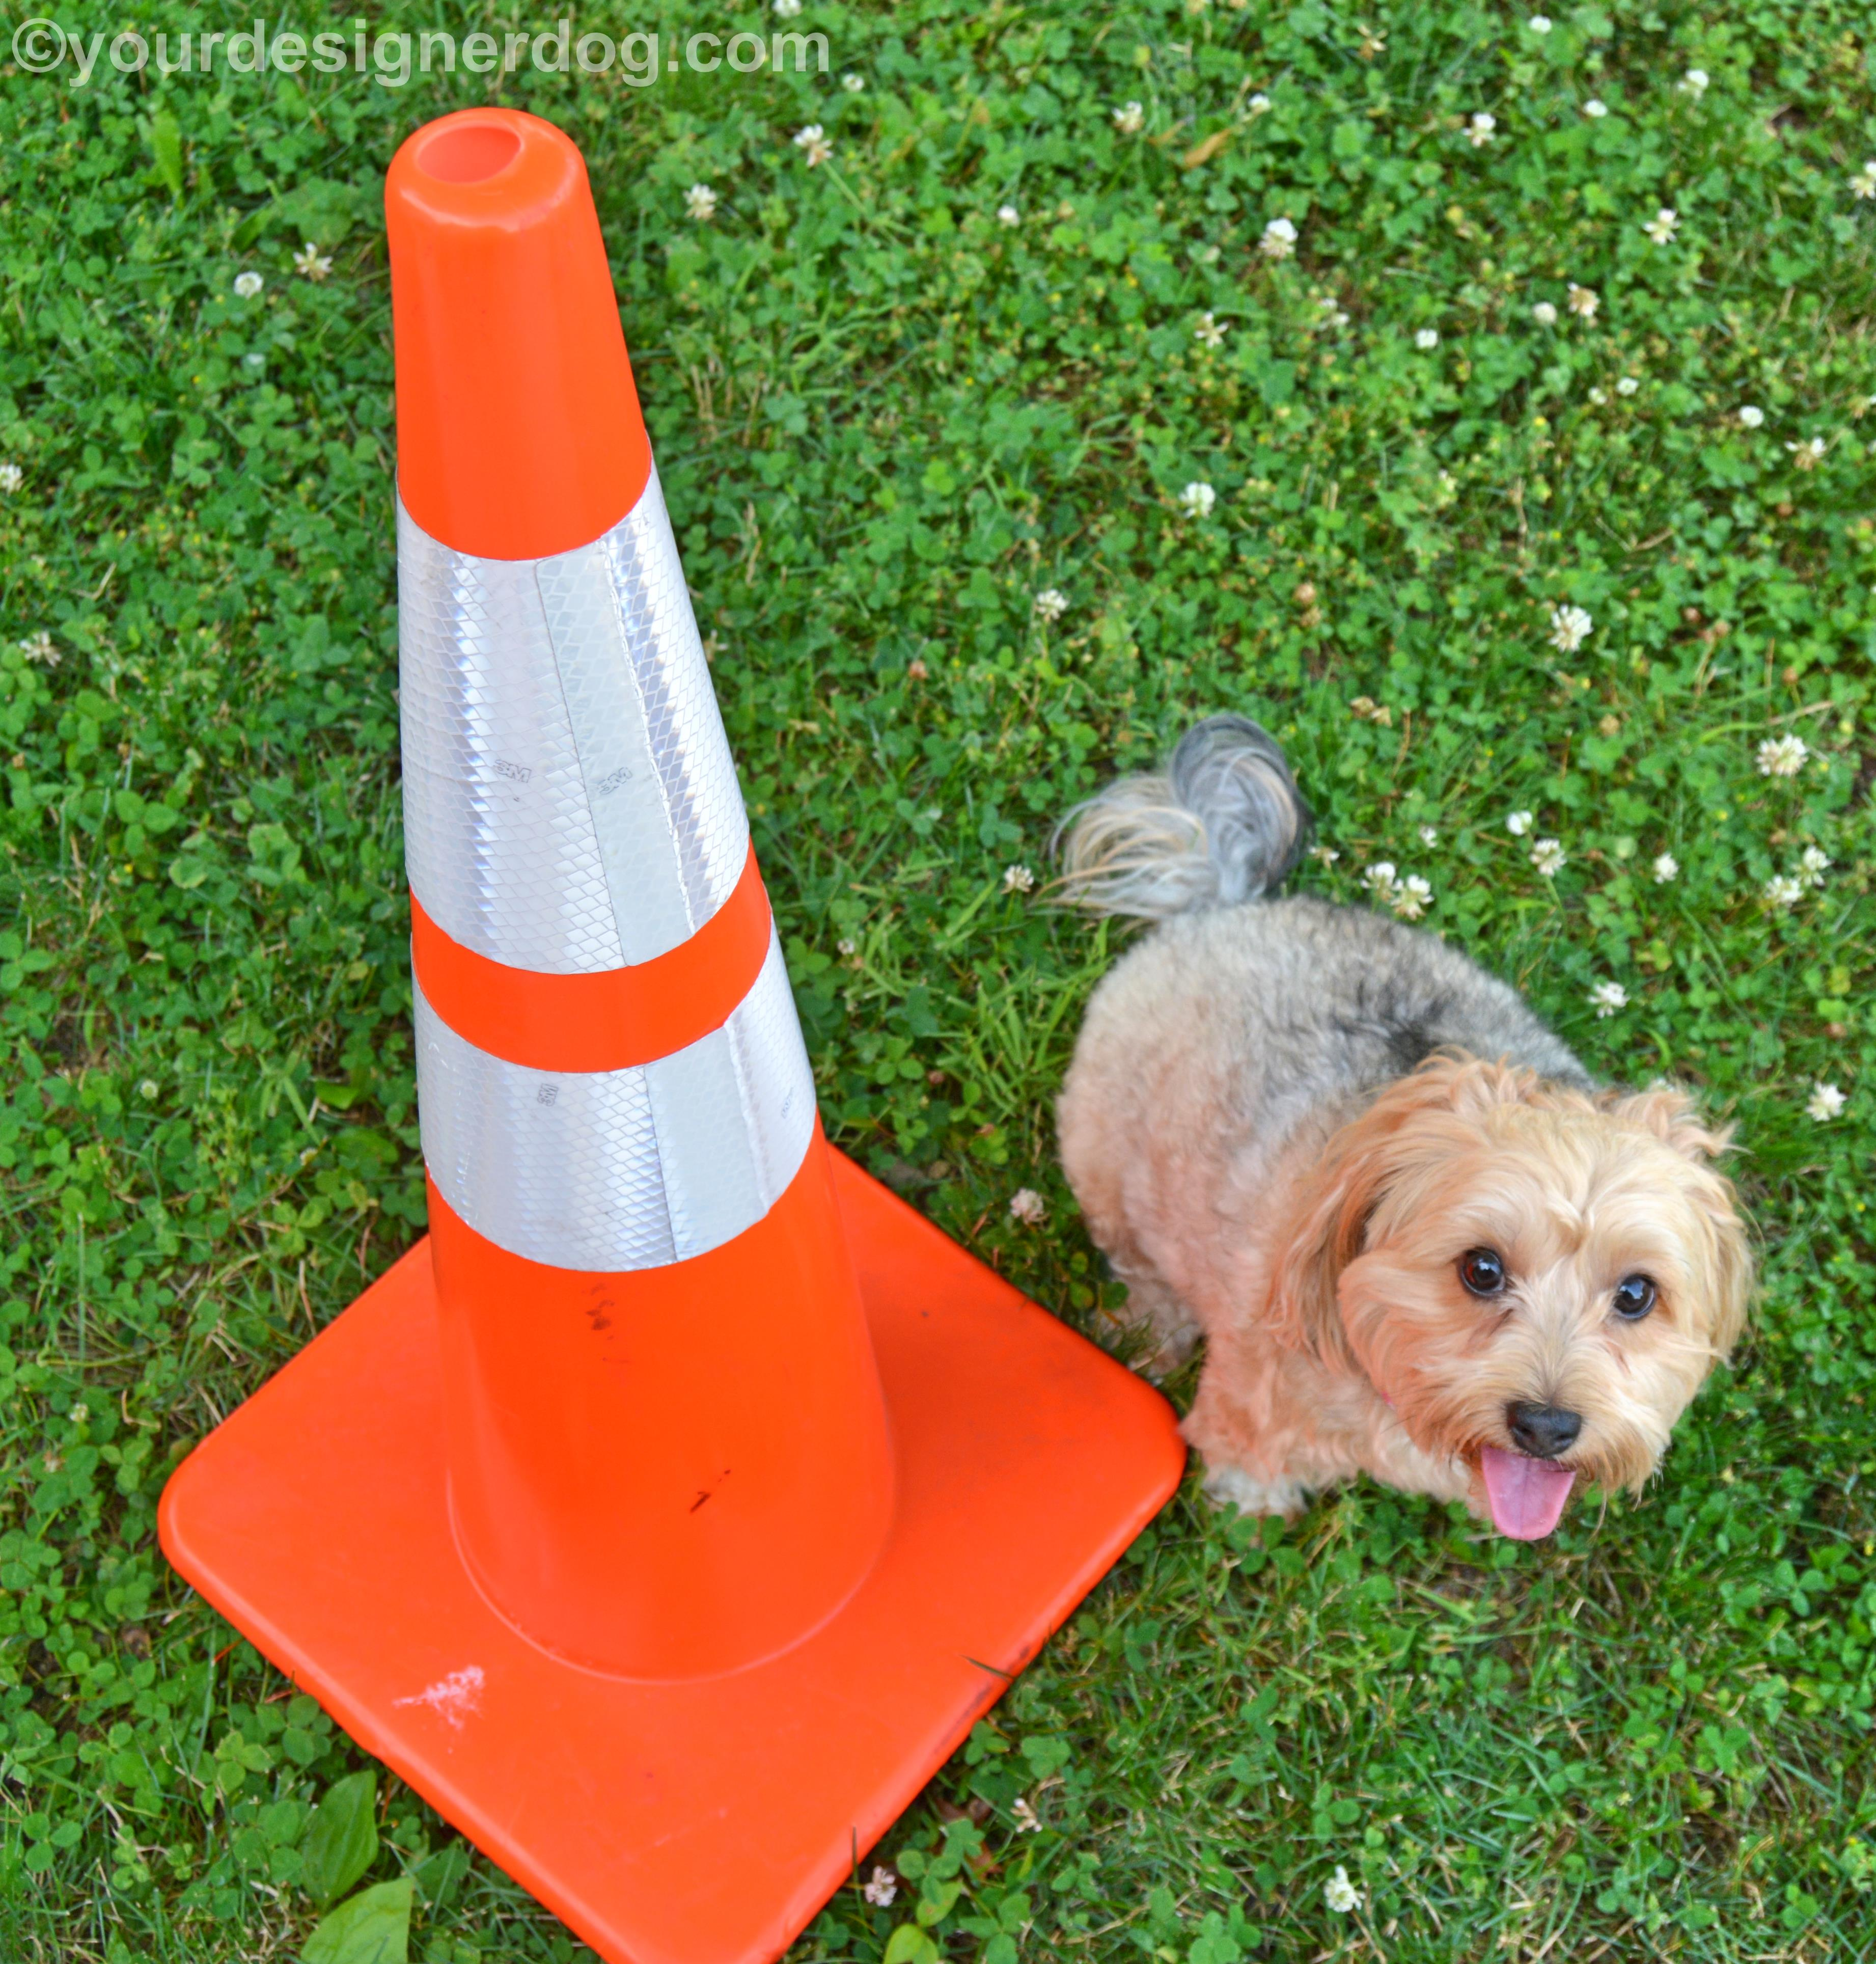 dogs, designer dogs, Yorkipoo, yorkie poo, traffic cone, tongue out, dog smiling